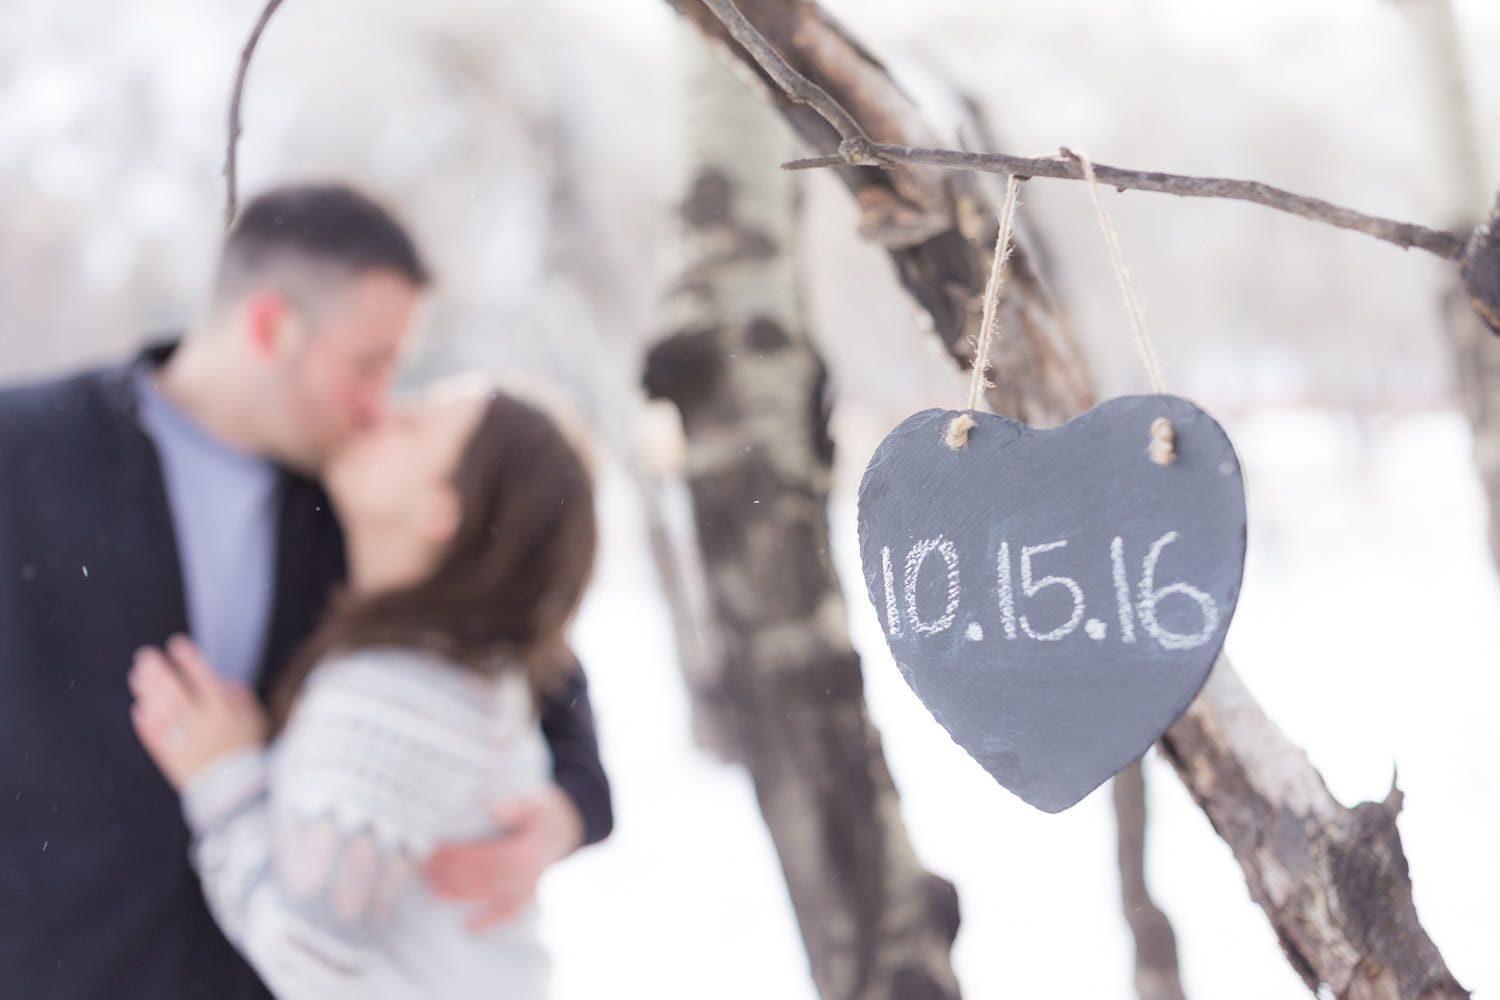 Pin by Imagistica Studio on Save the Date photoshoot